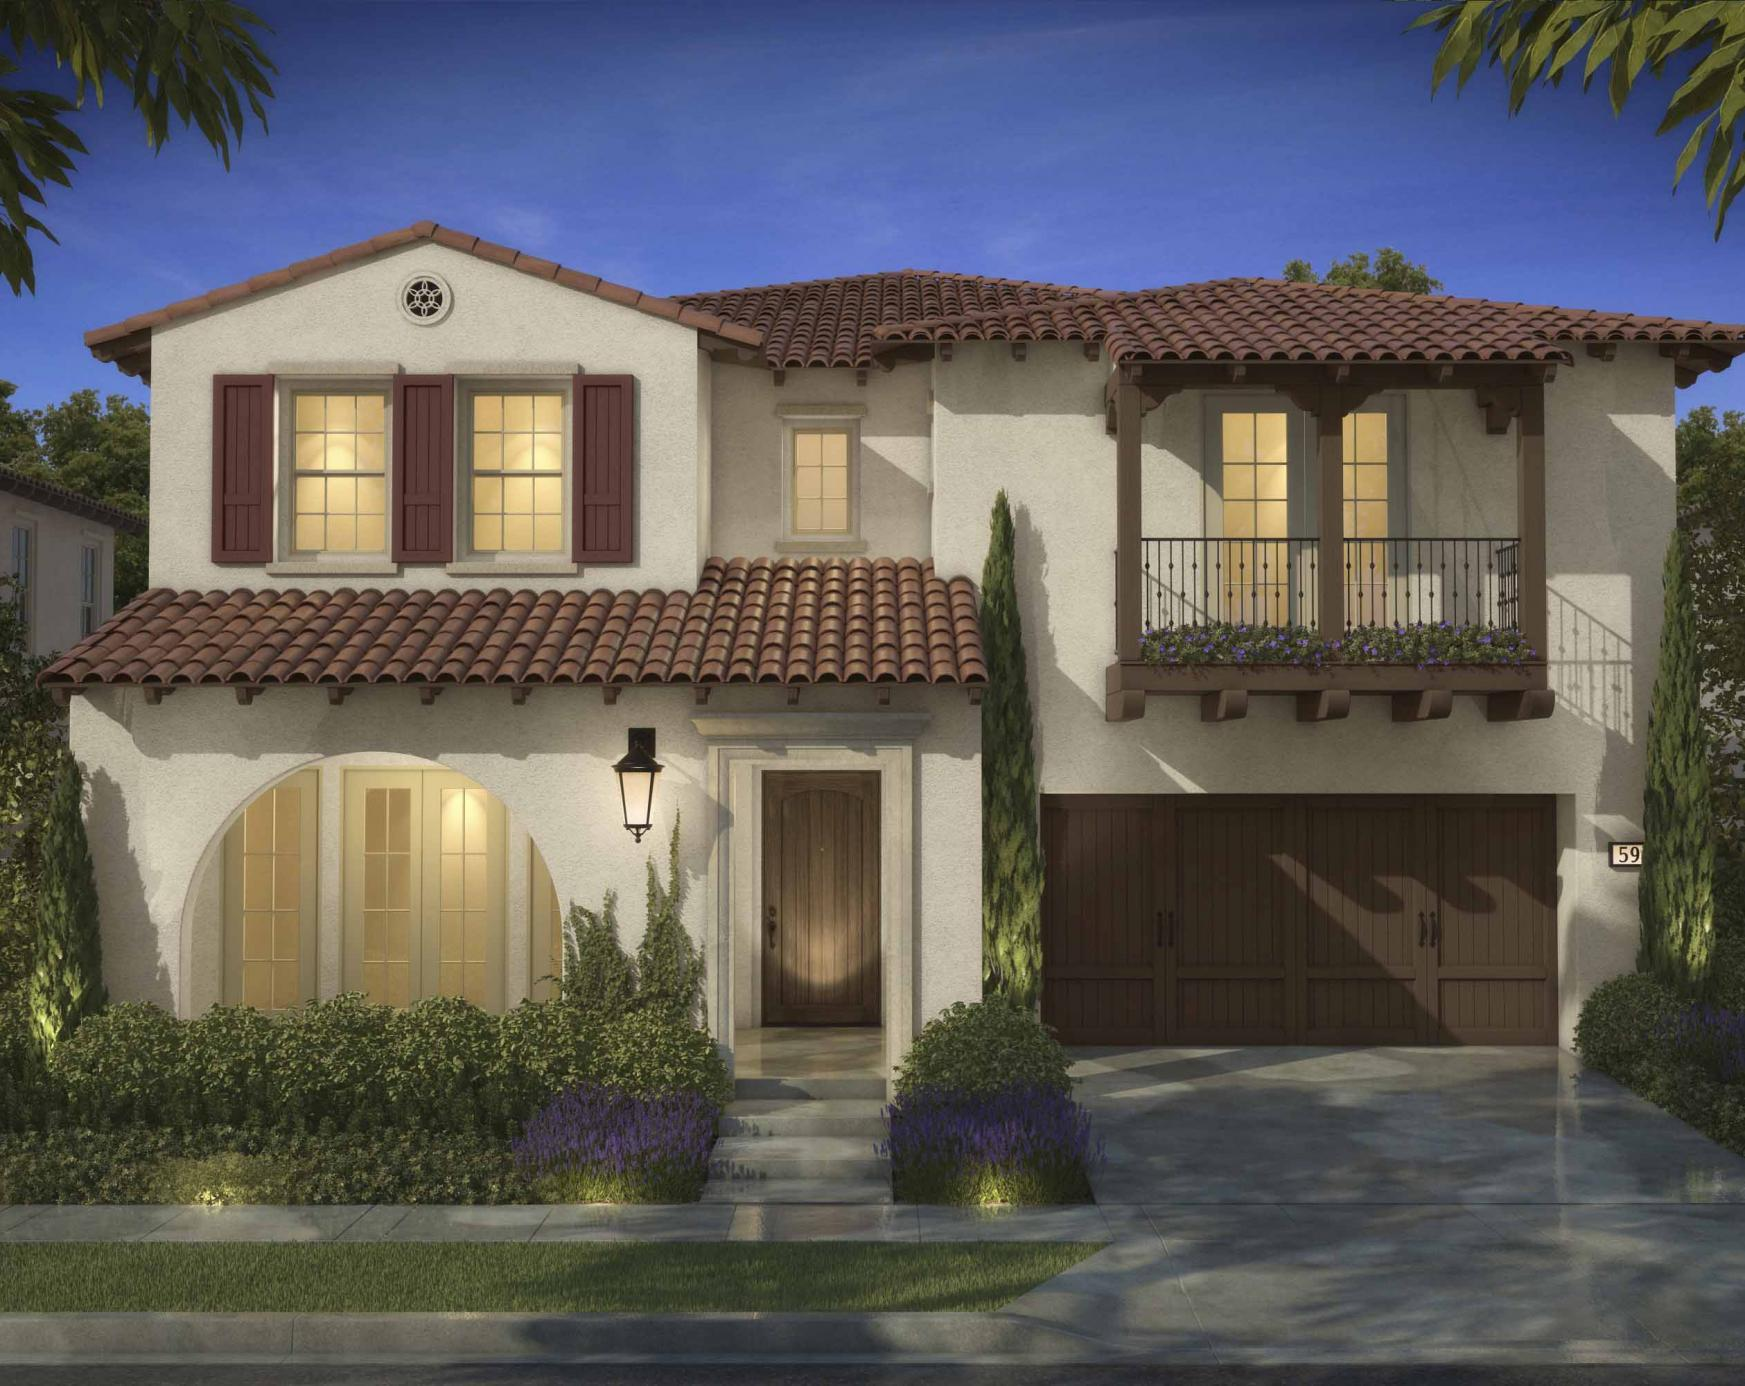 The New Home Company New Home Plans in Irvine CA | NewHomeSource